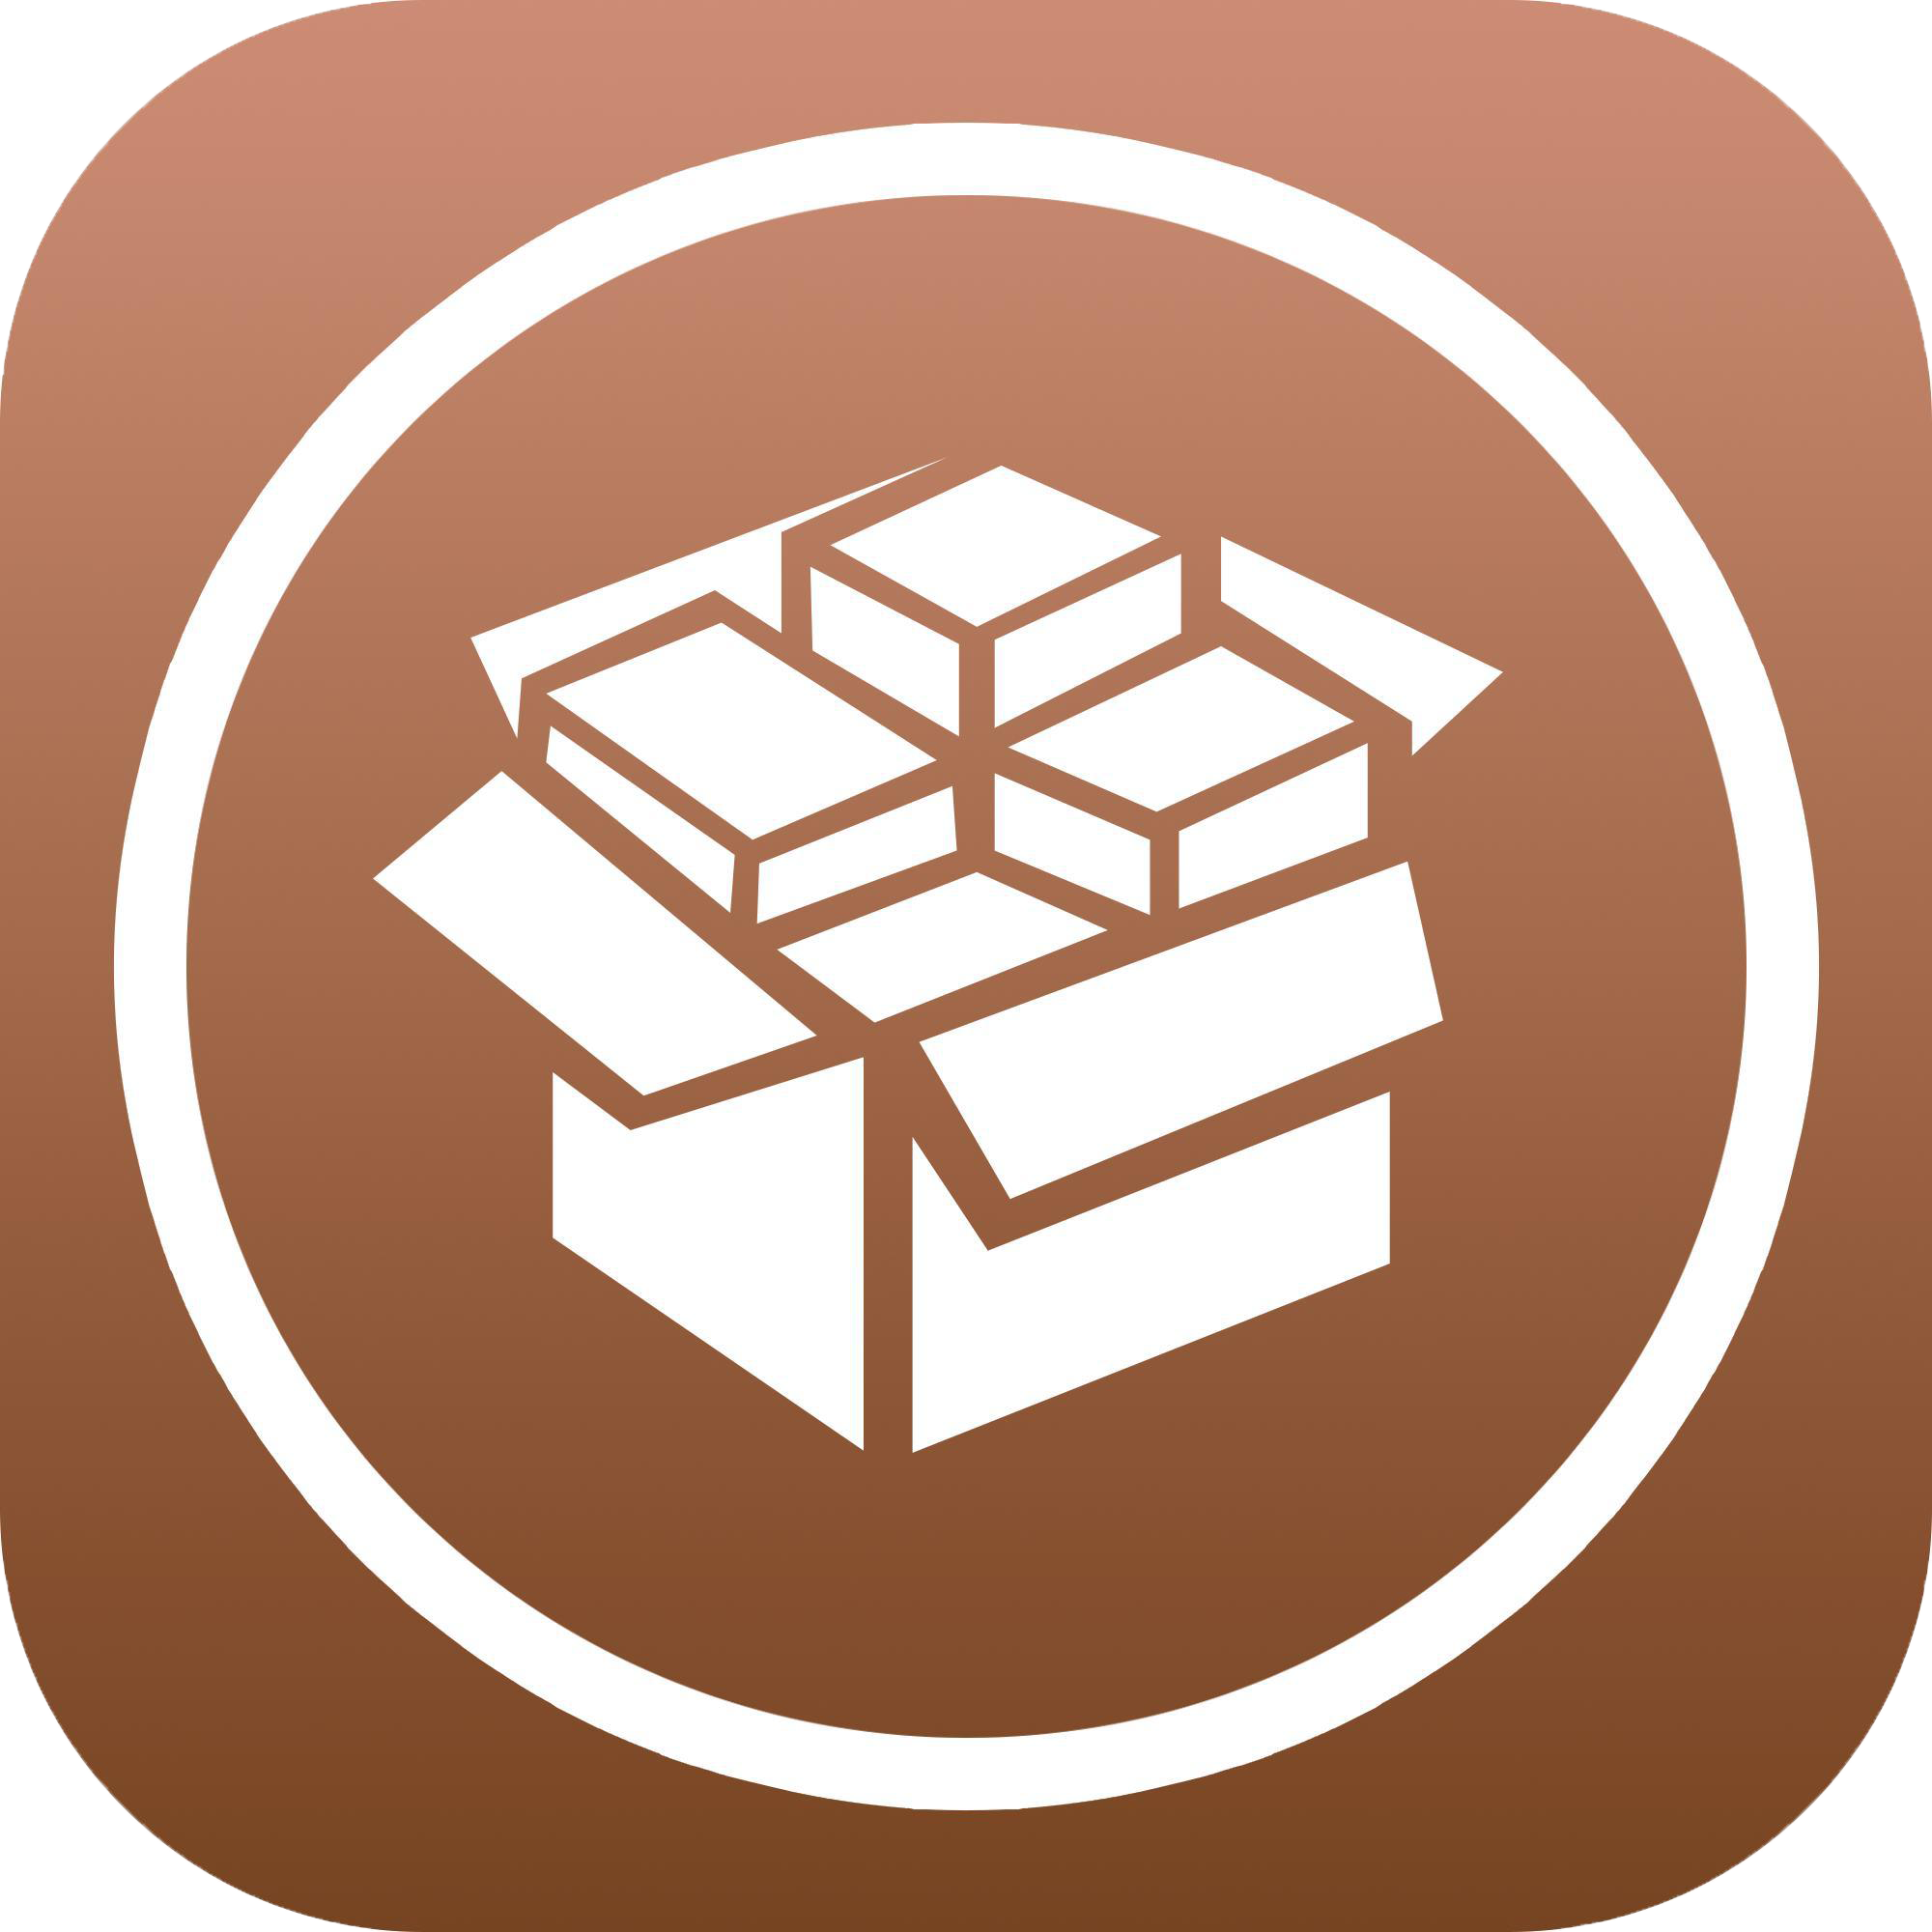 comment reparer un iphone 4 jailbreak